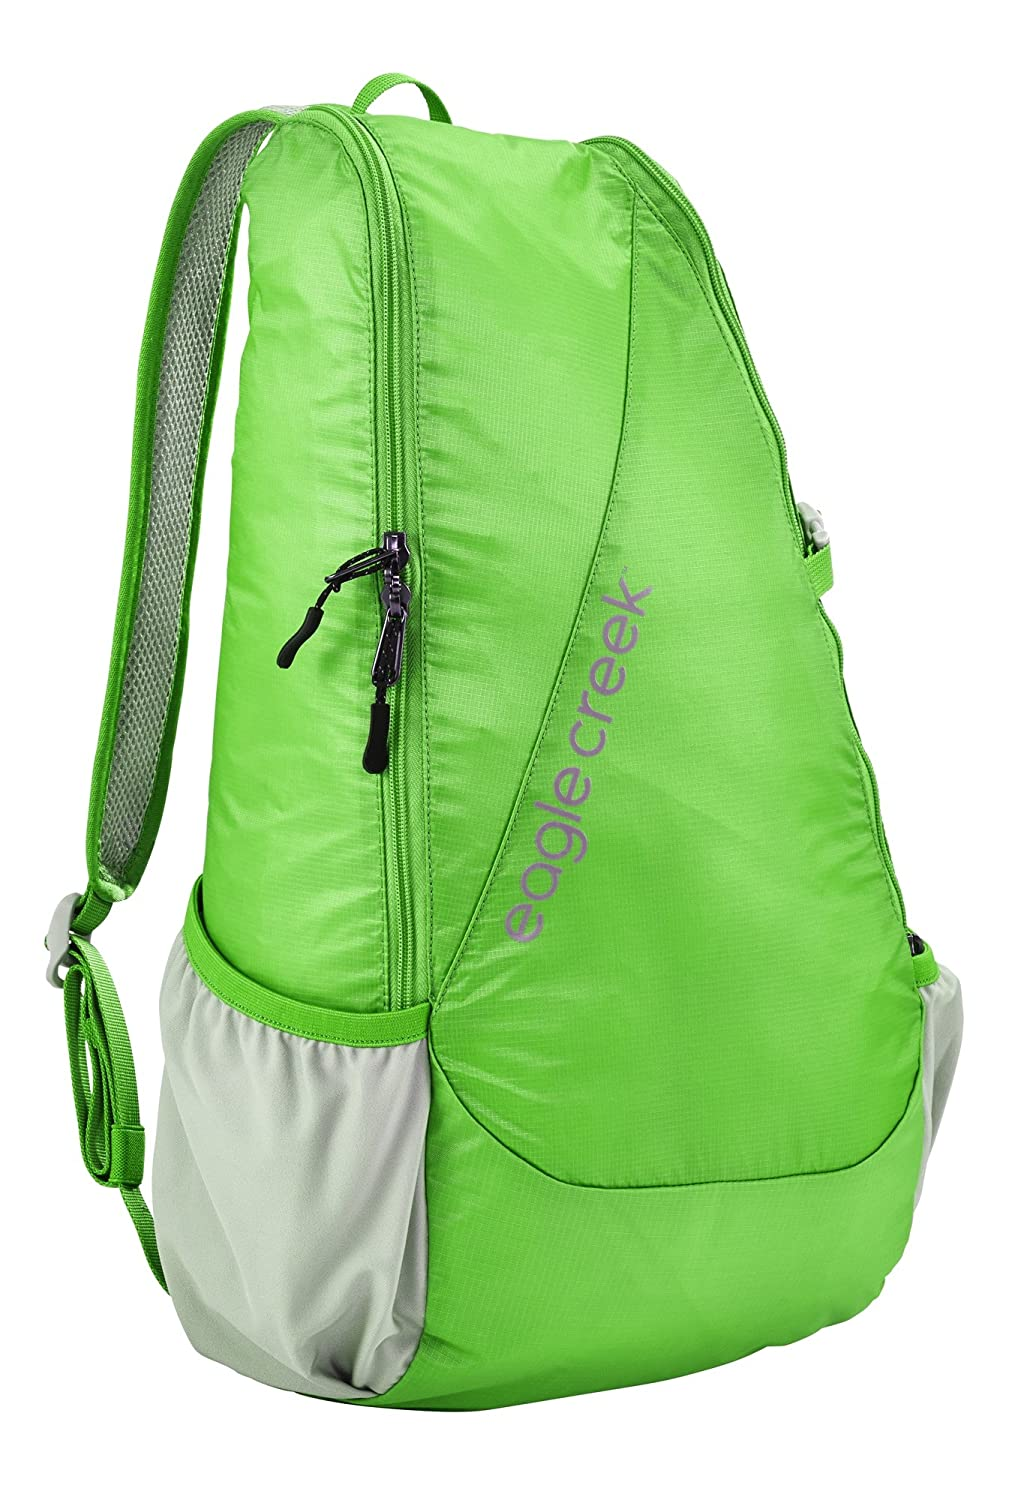 Eagle Creek Travel Gear 2-In-1 Sling Backpack, Mantis Green, One Size